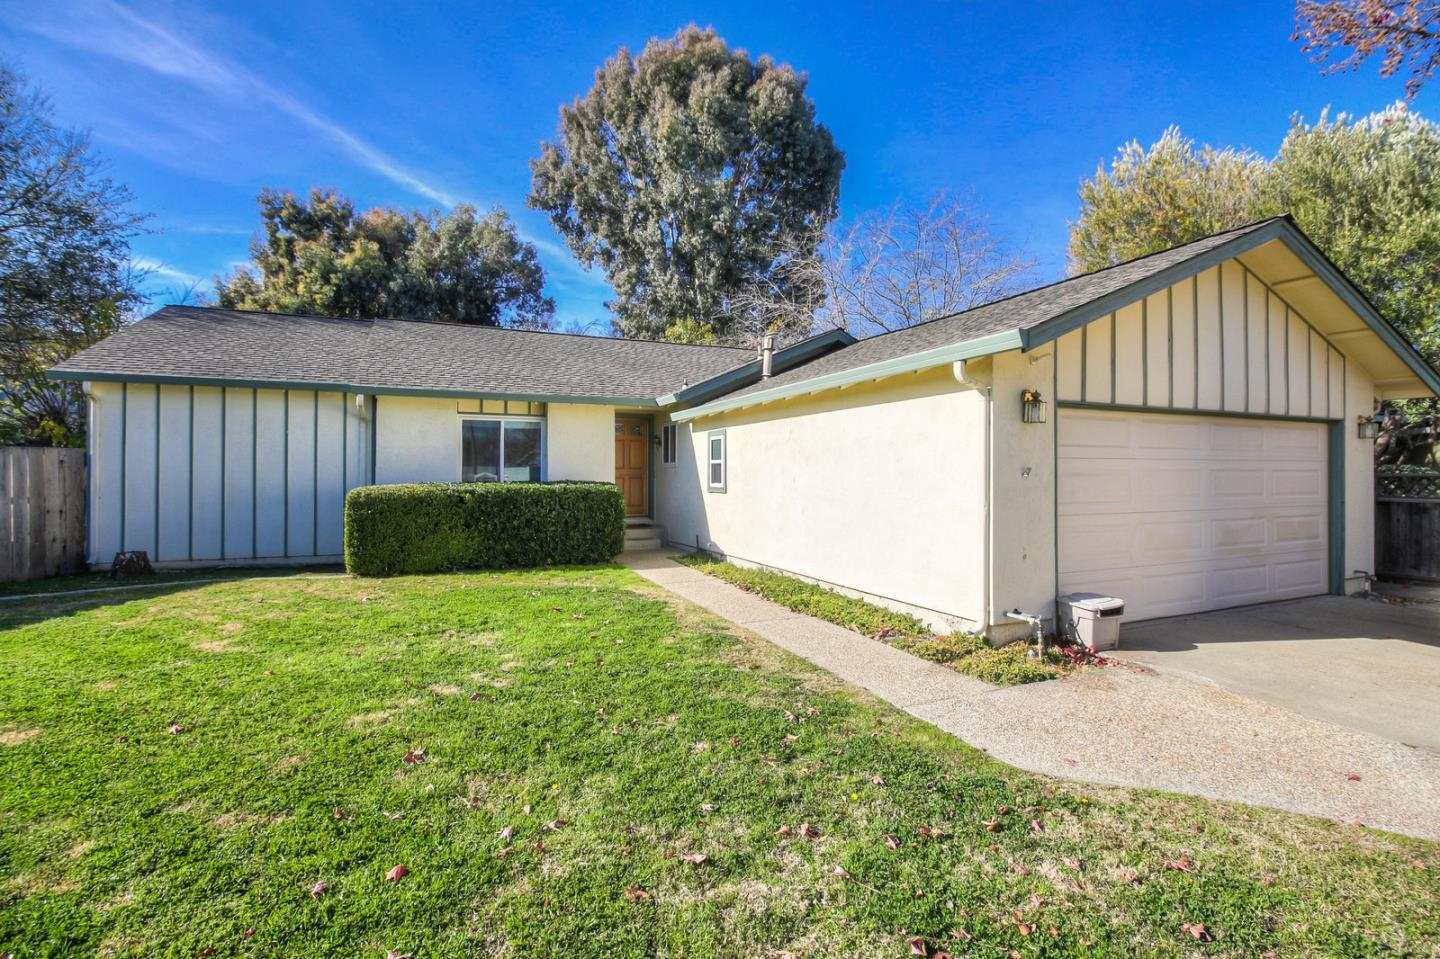 Property for sale at 5973 Tandera AVE, San Jose,  CA 95123